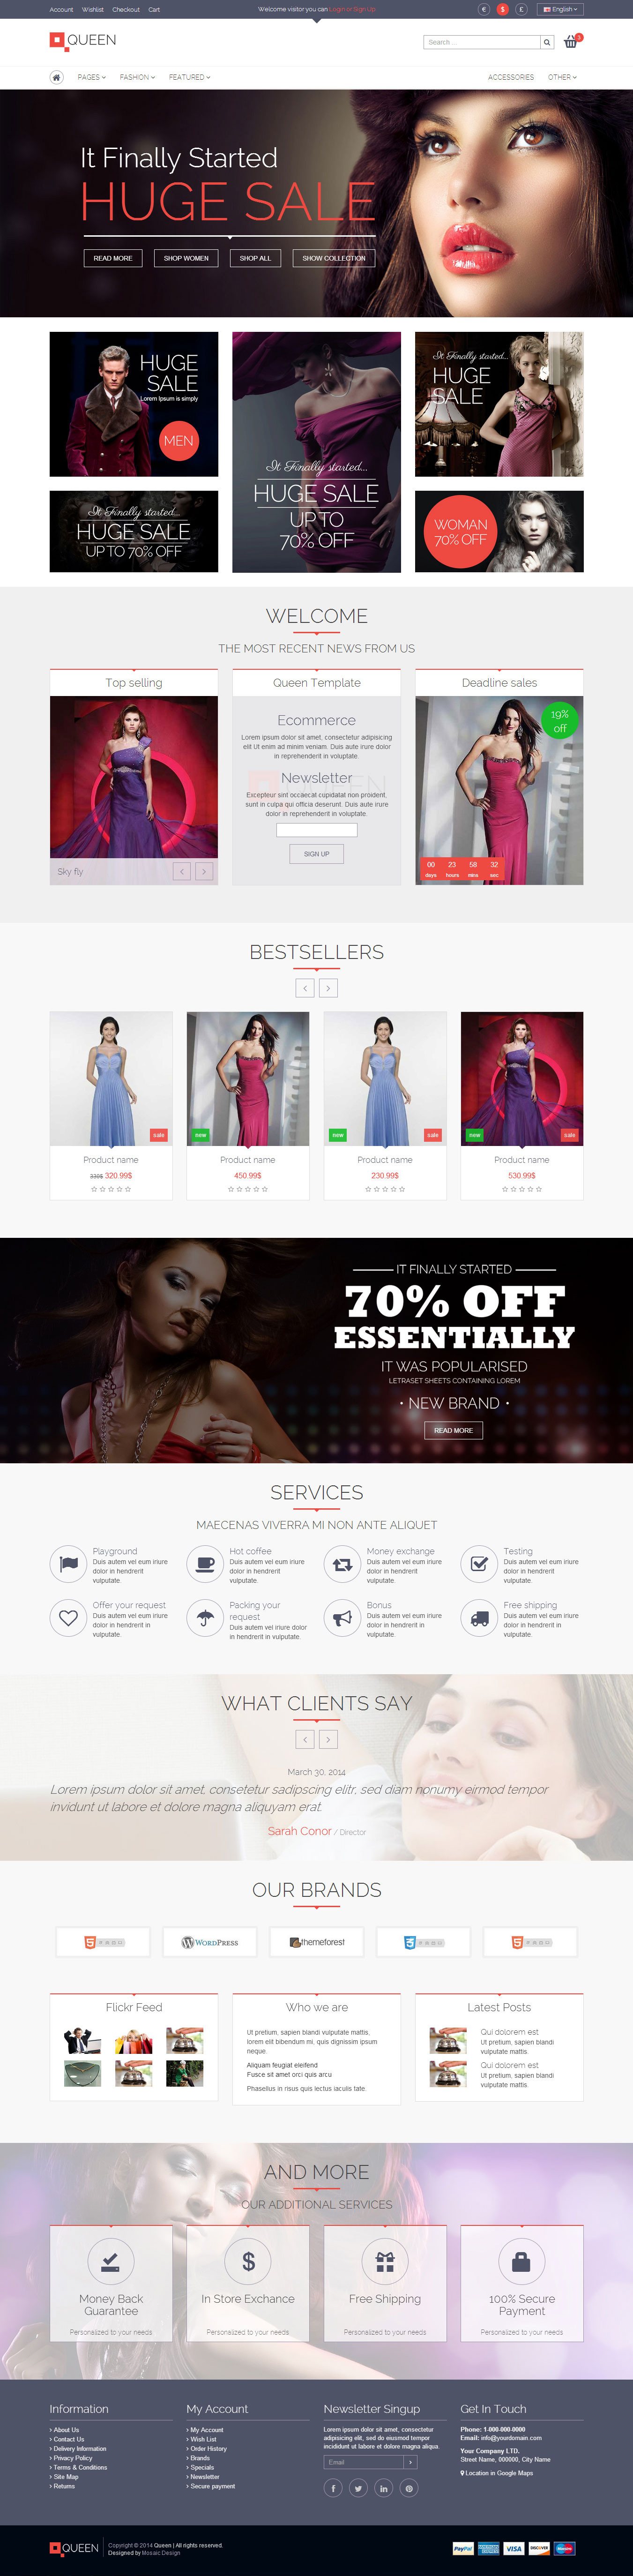 Queen - Responsive E-Commerce Template